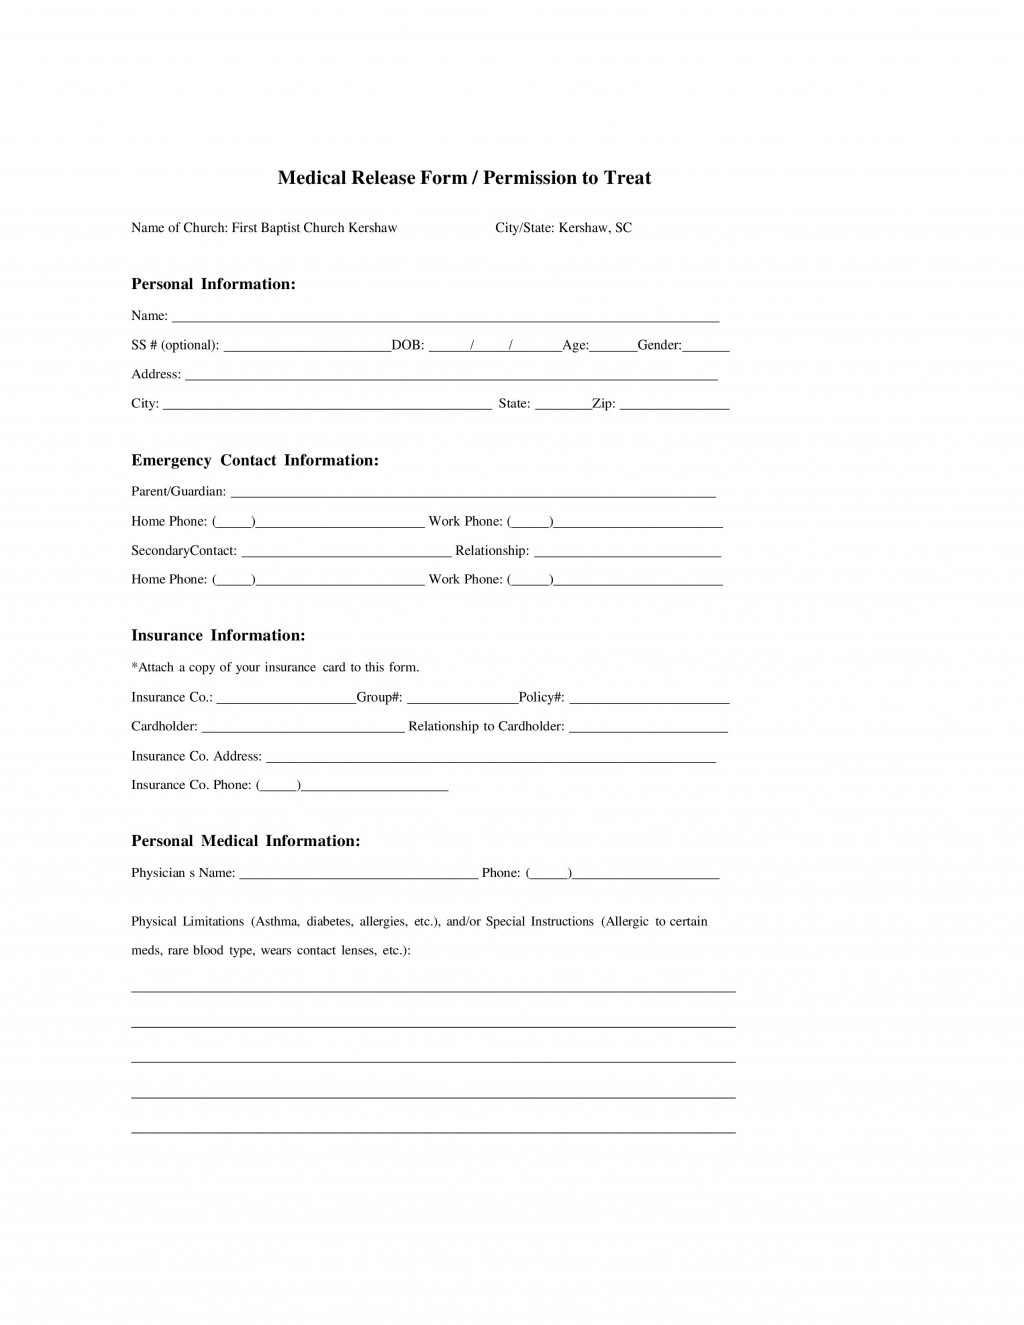 006 Simple Medical Release Form Template Example  Free Consent Uk For MinorLarge